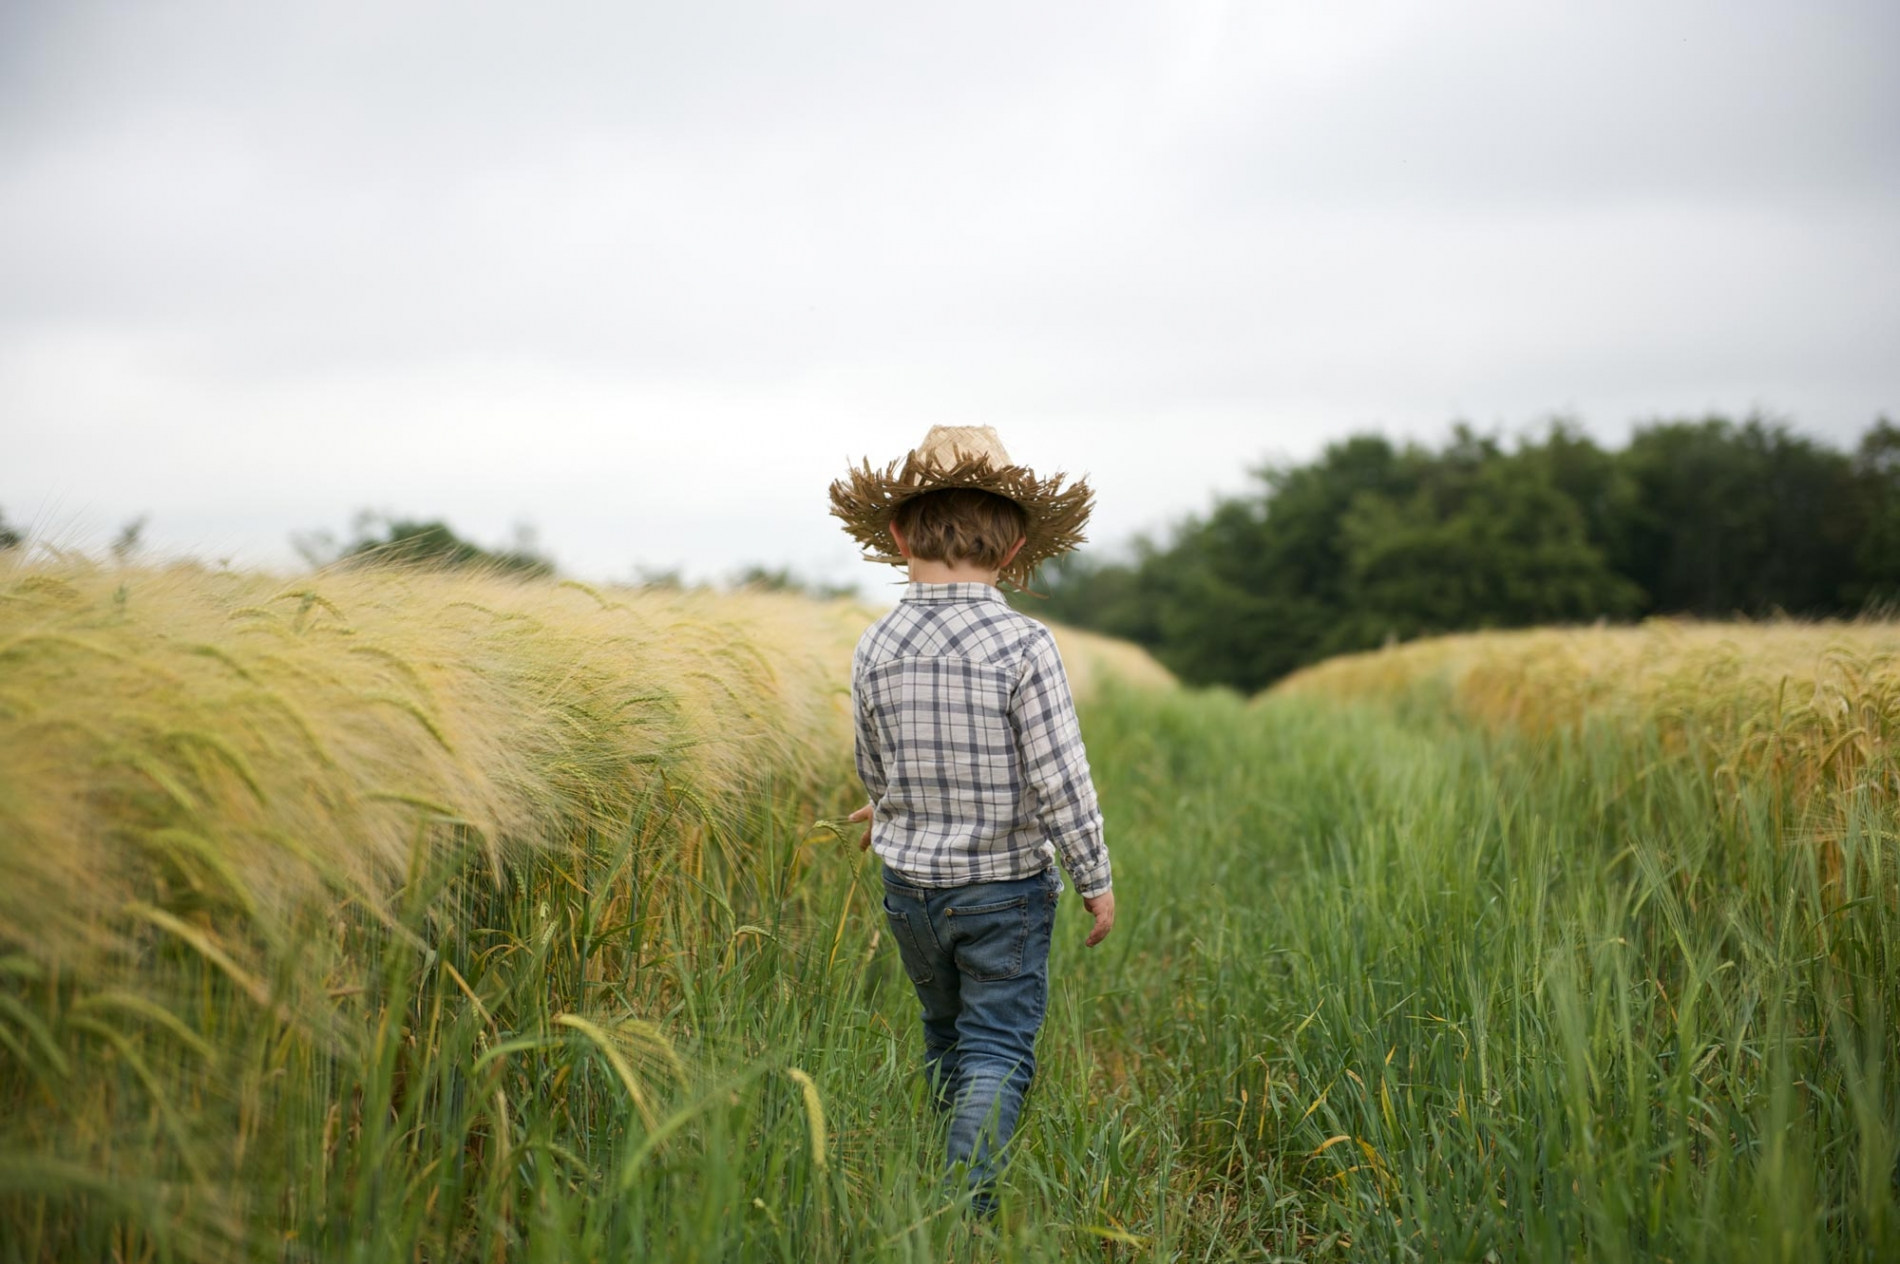 Young boy walking through a green field